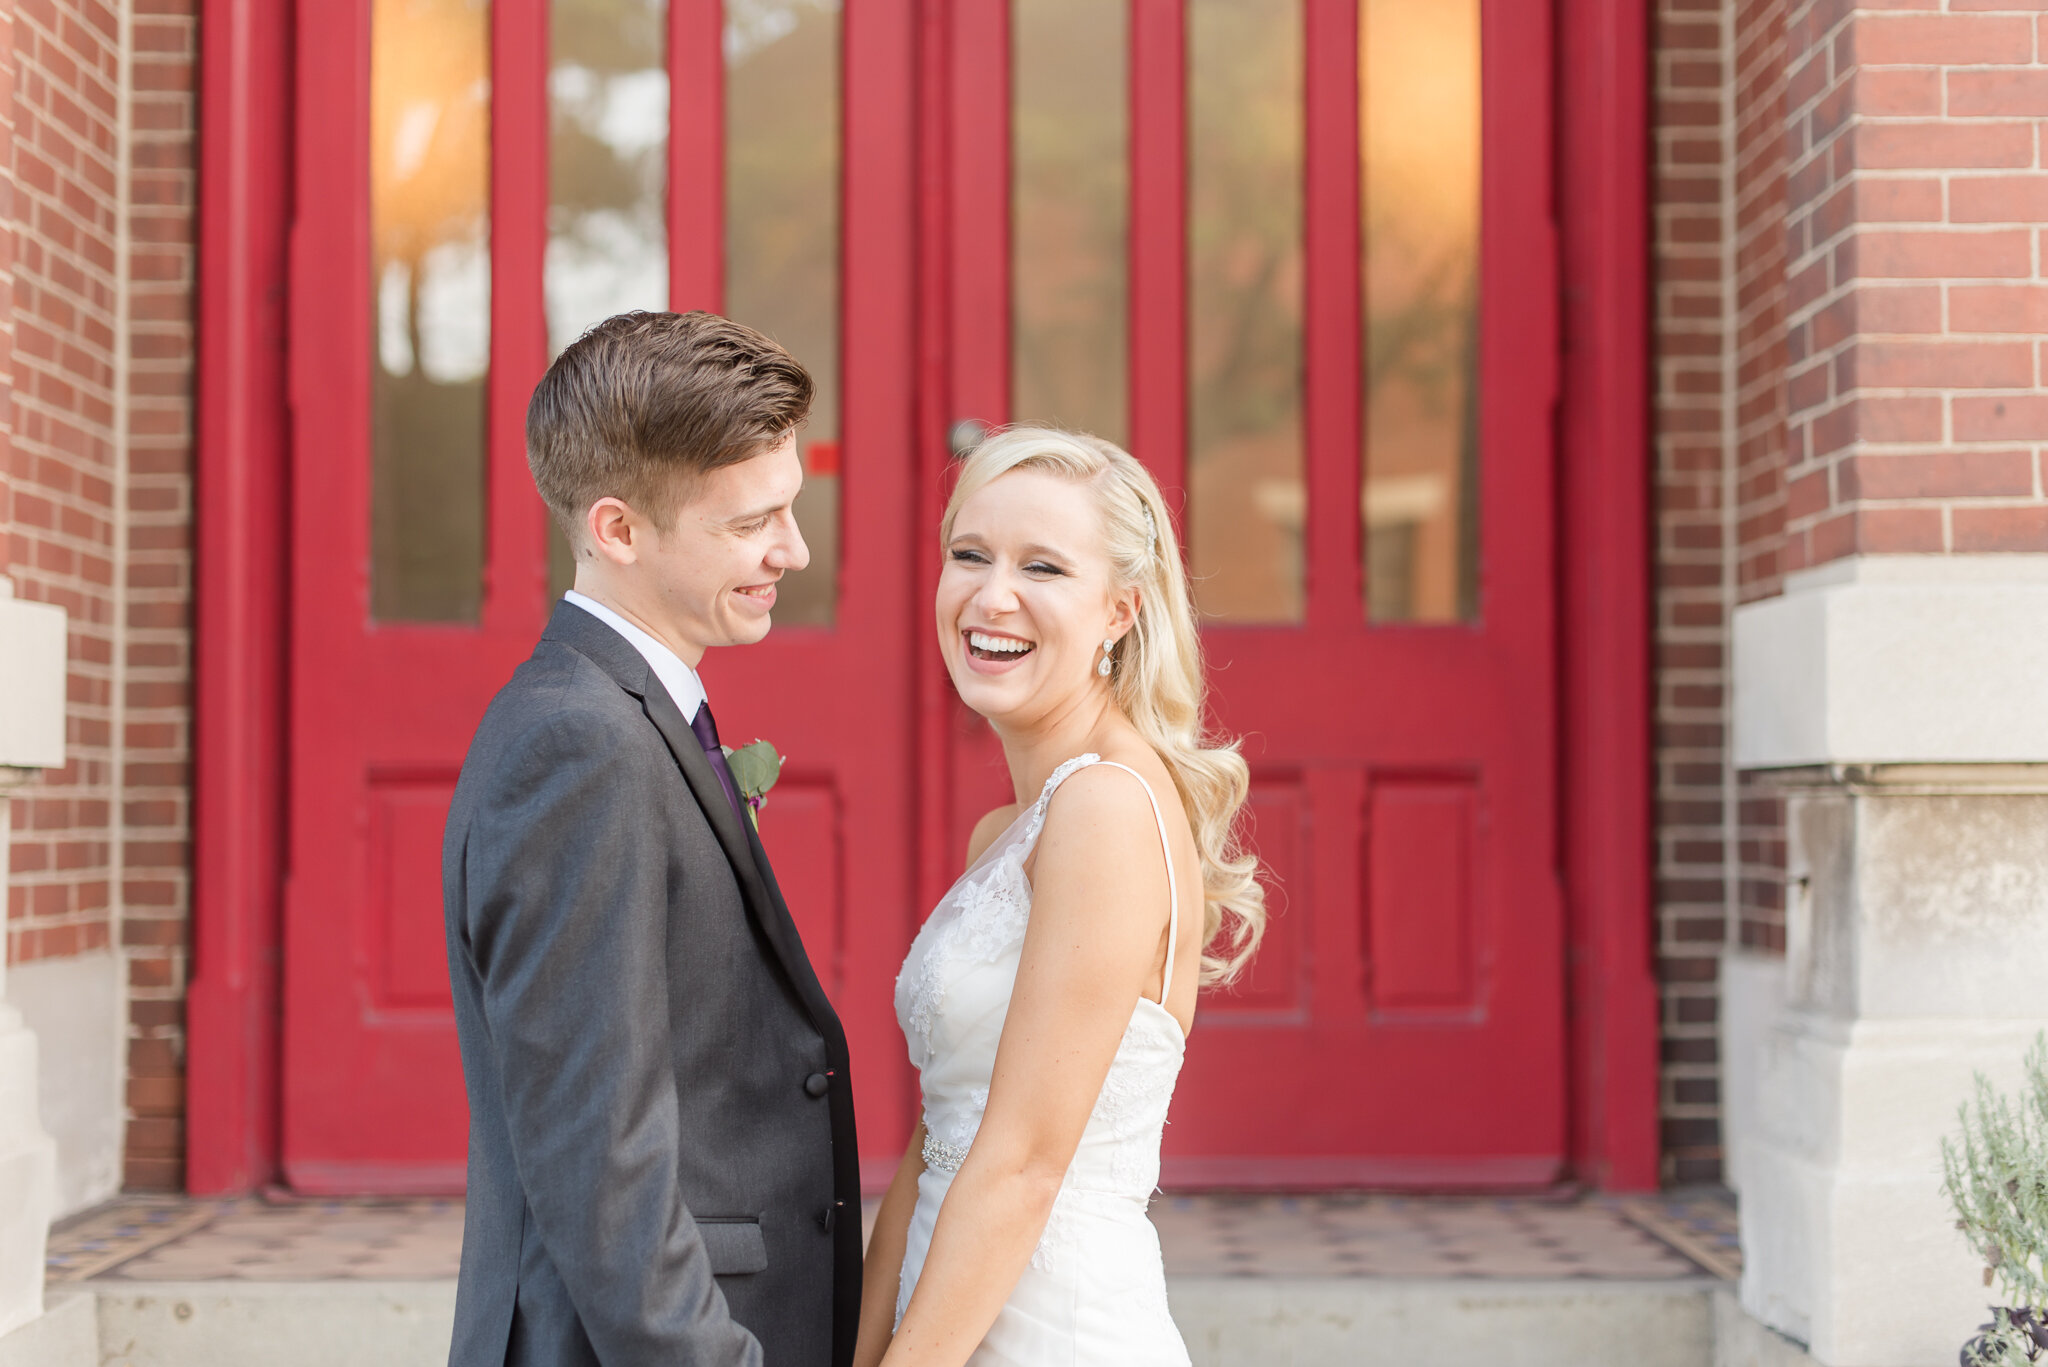 Downtown Indianapolis Wedding at Cyrus Place8341.jpg